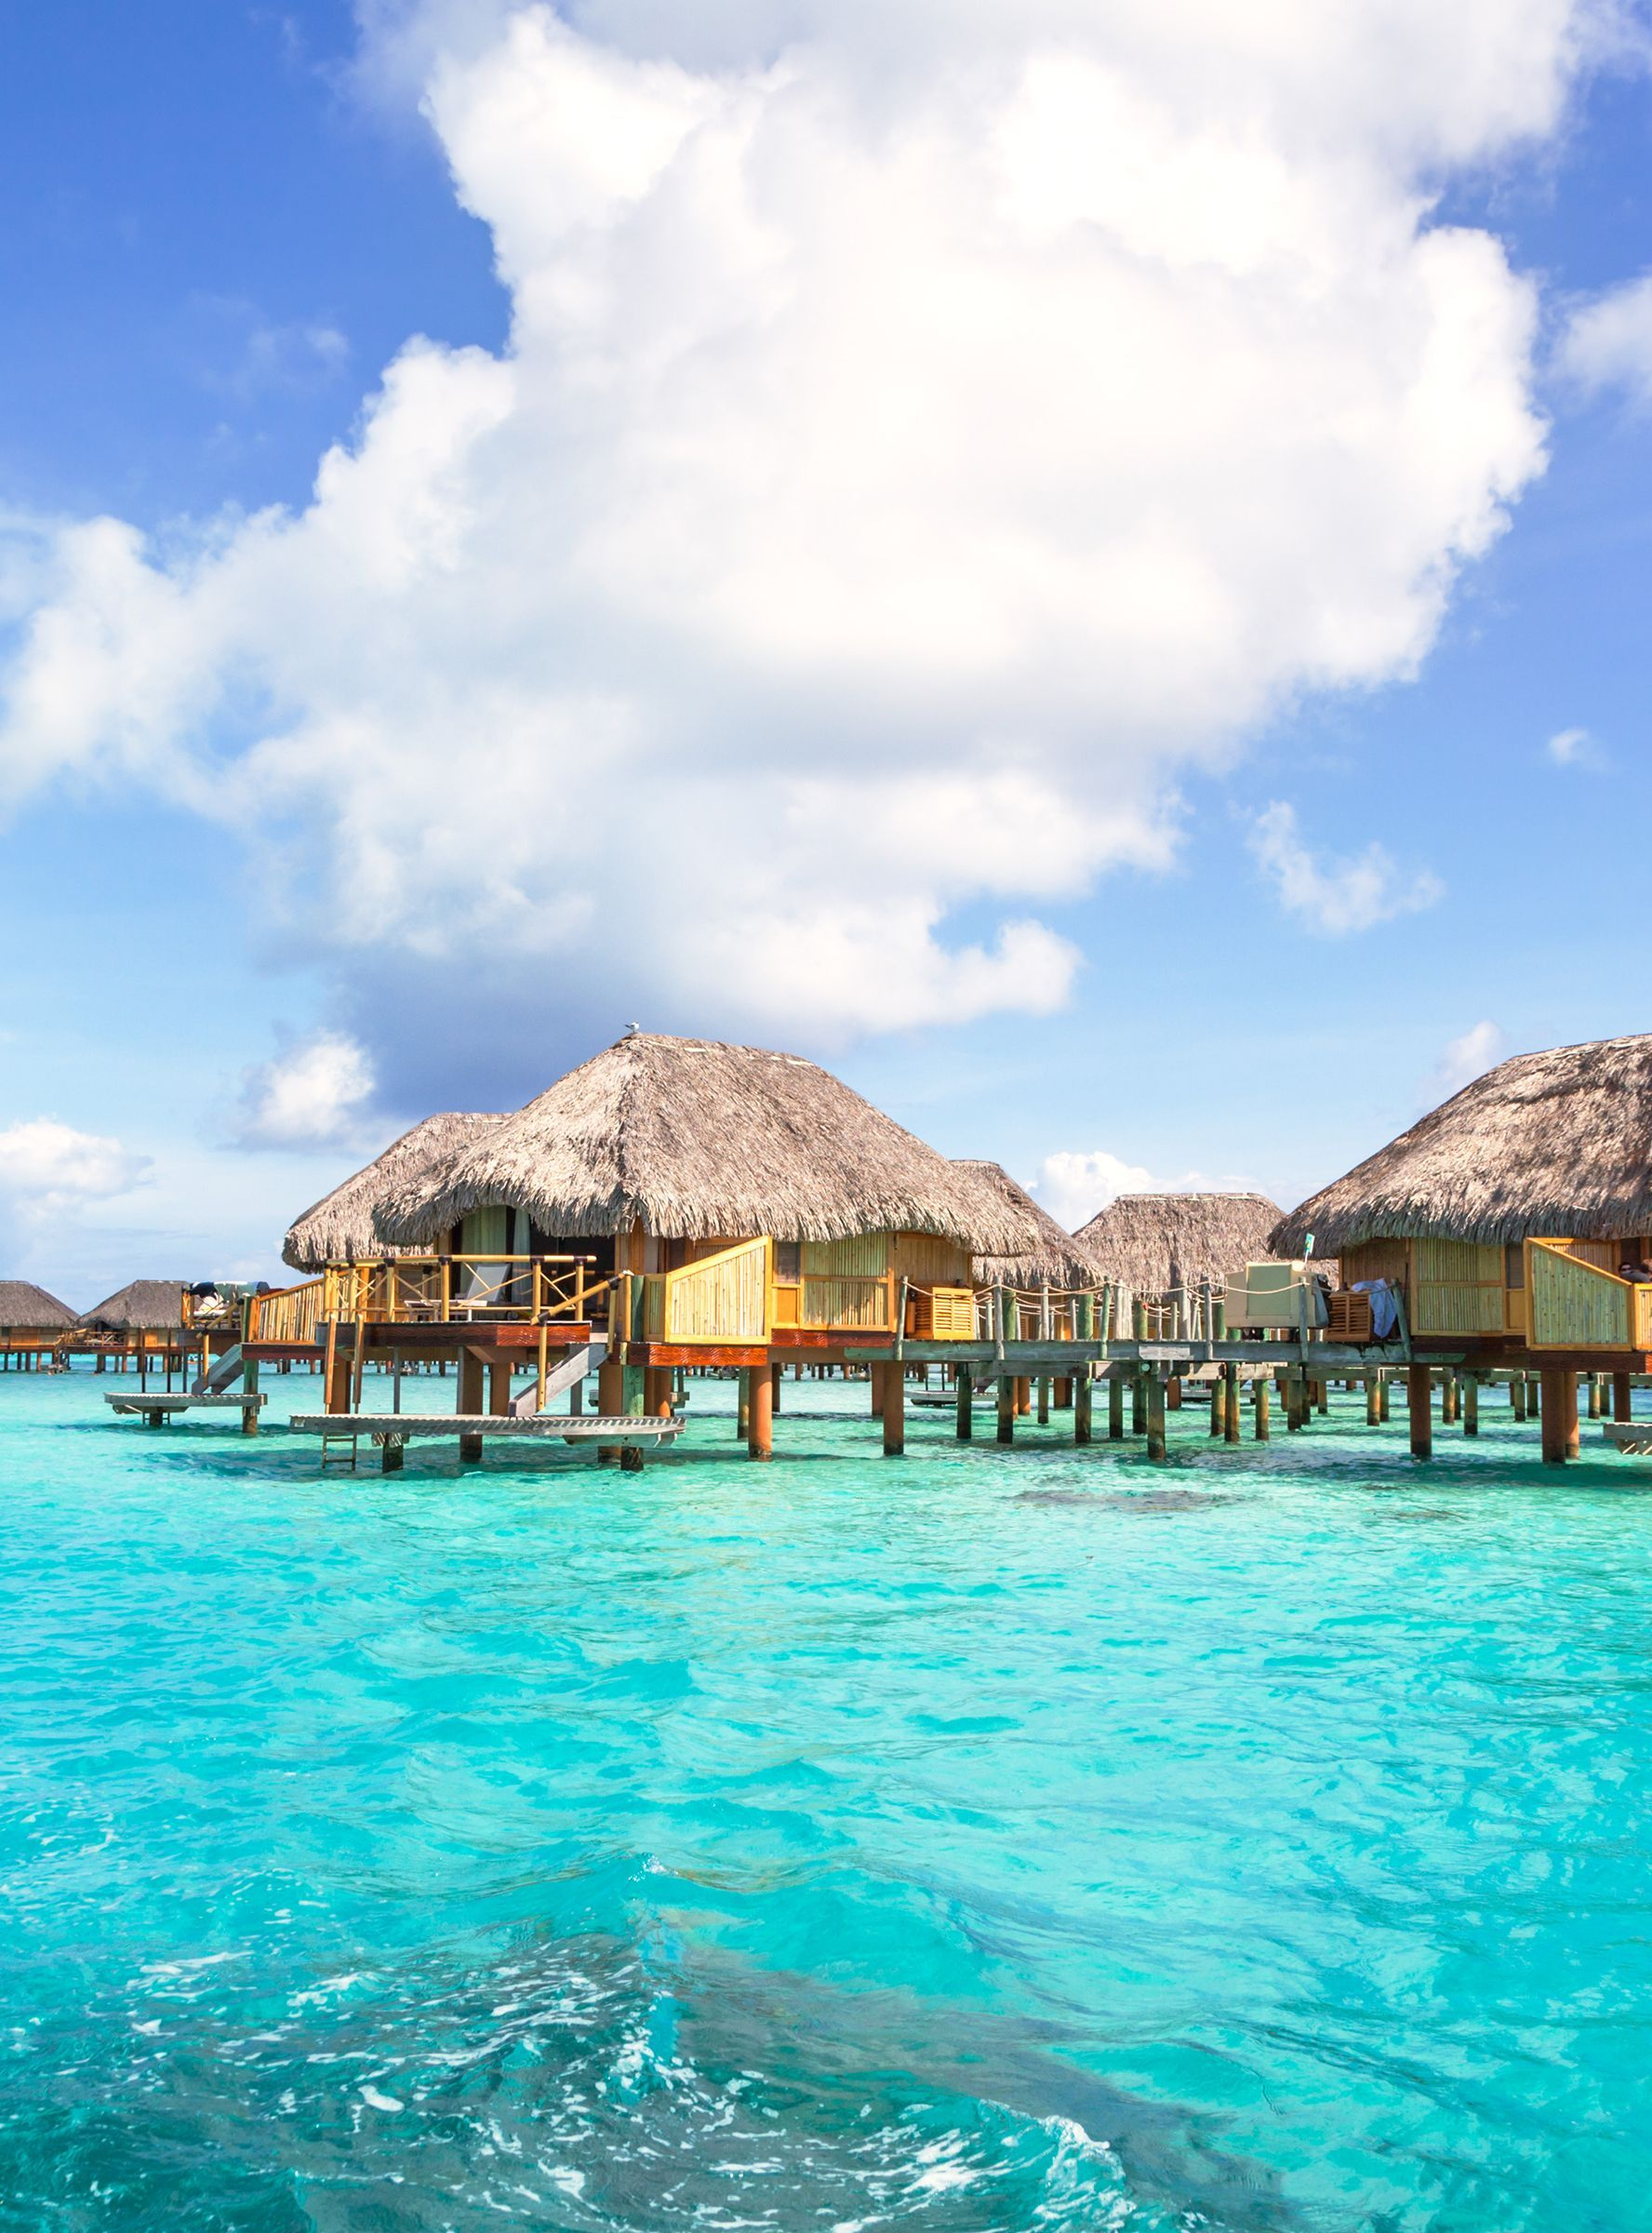 Airbnb Has A Ton Of Overwater Bungalows Some Of Them Are Actually Affordable Places To Go In 2019 Overwater Bungalows Travel Leisure Trip Advisor